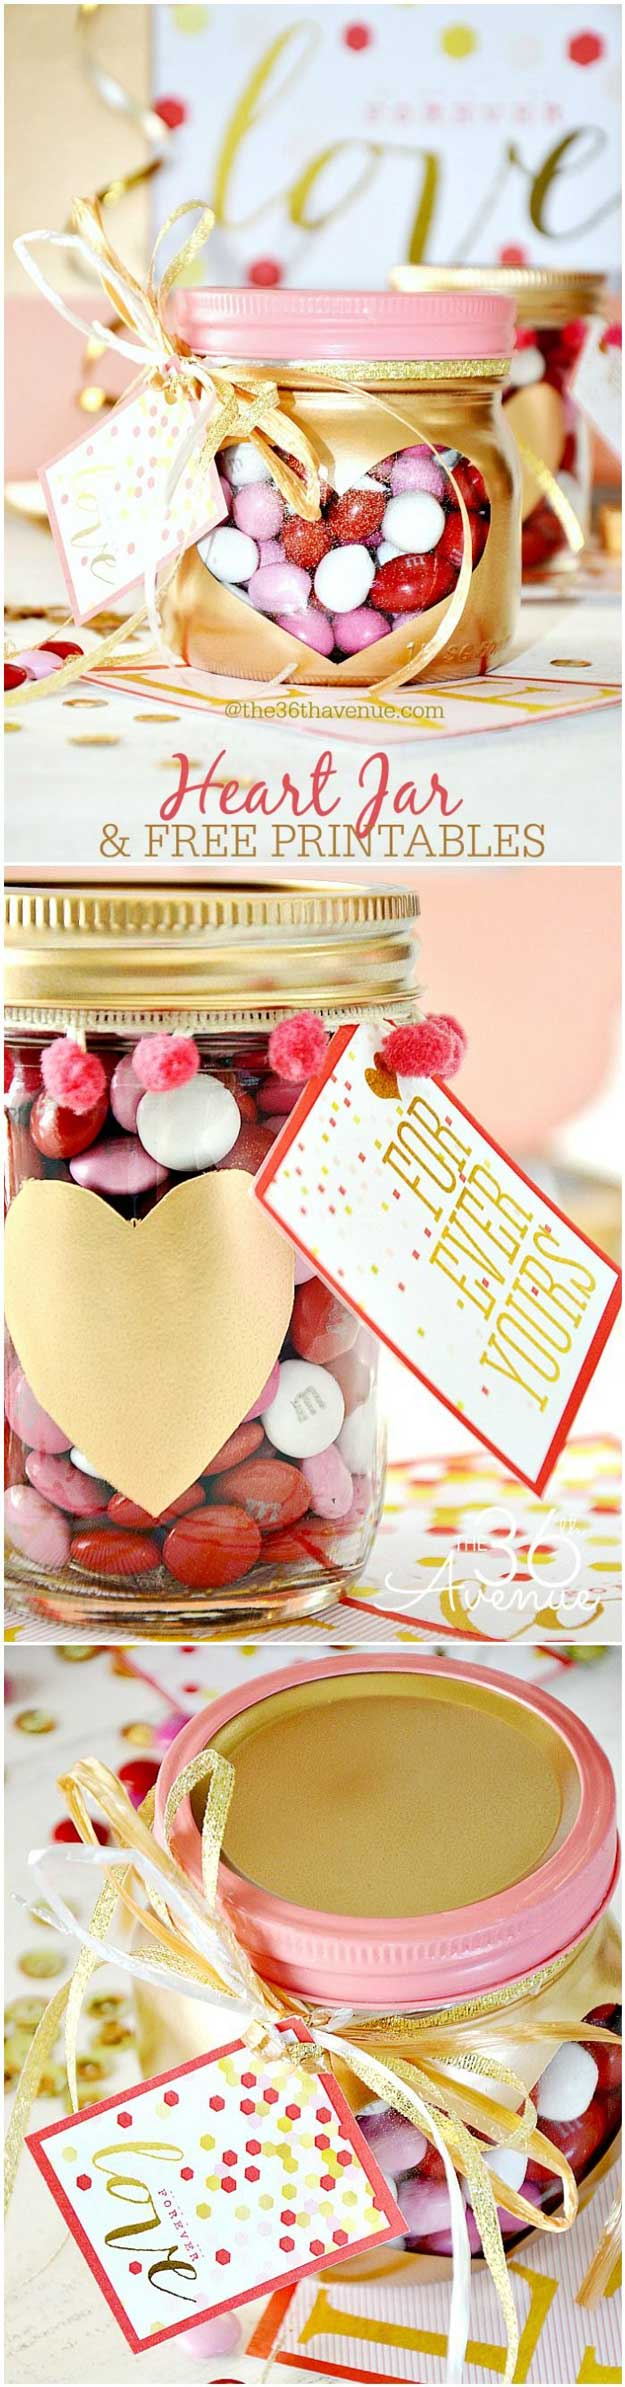 Mason Jar Valentine Gifts and Crafts | DIY Ideas for Valentines Day for Cute Gift Giving and Decor | Heart Jars and Free Printables | #valentines